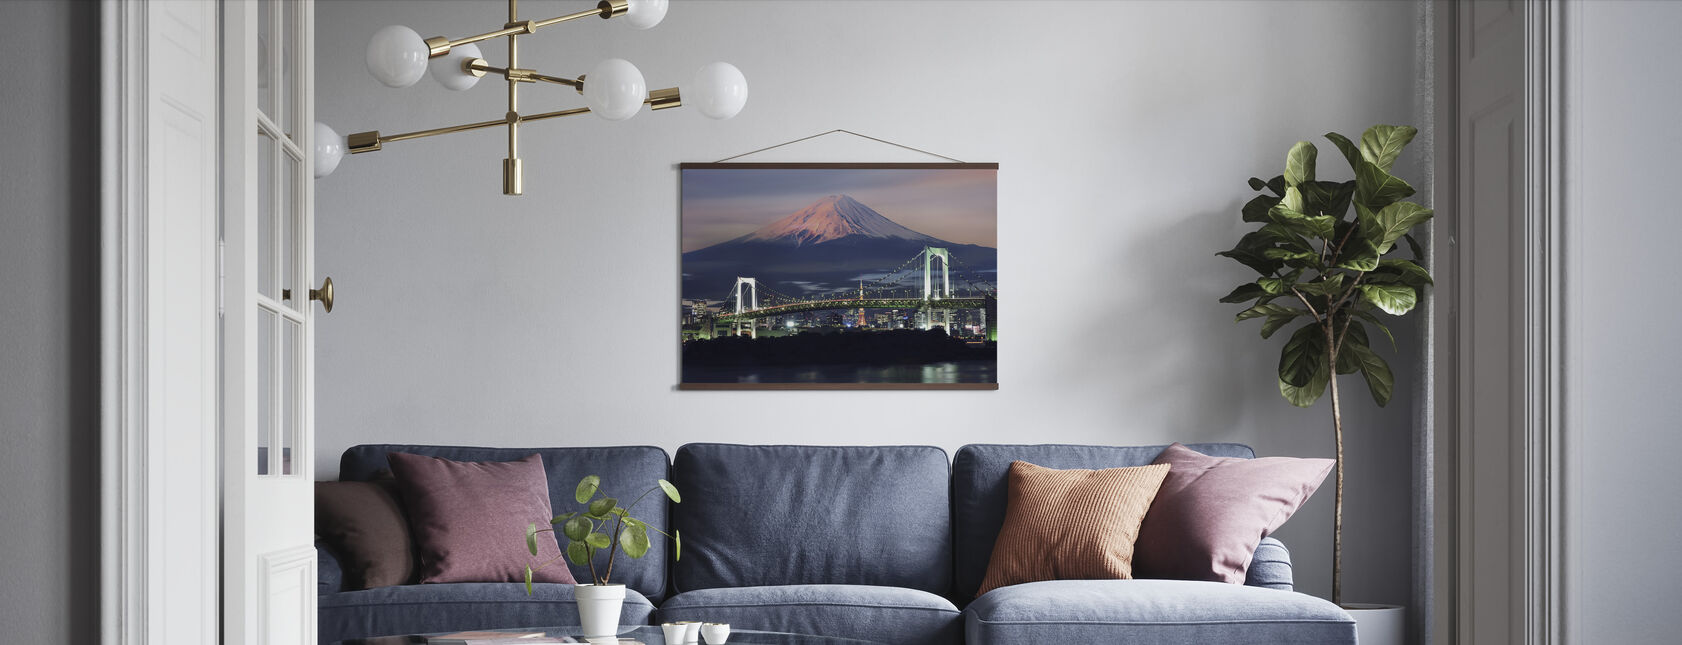 Rainbow Bridge with Mt Fuji - Poster - Living Room